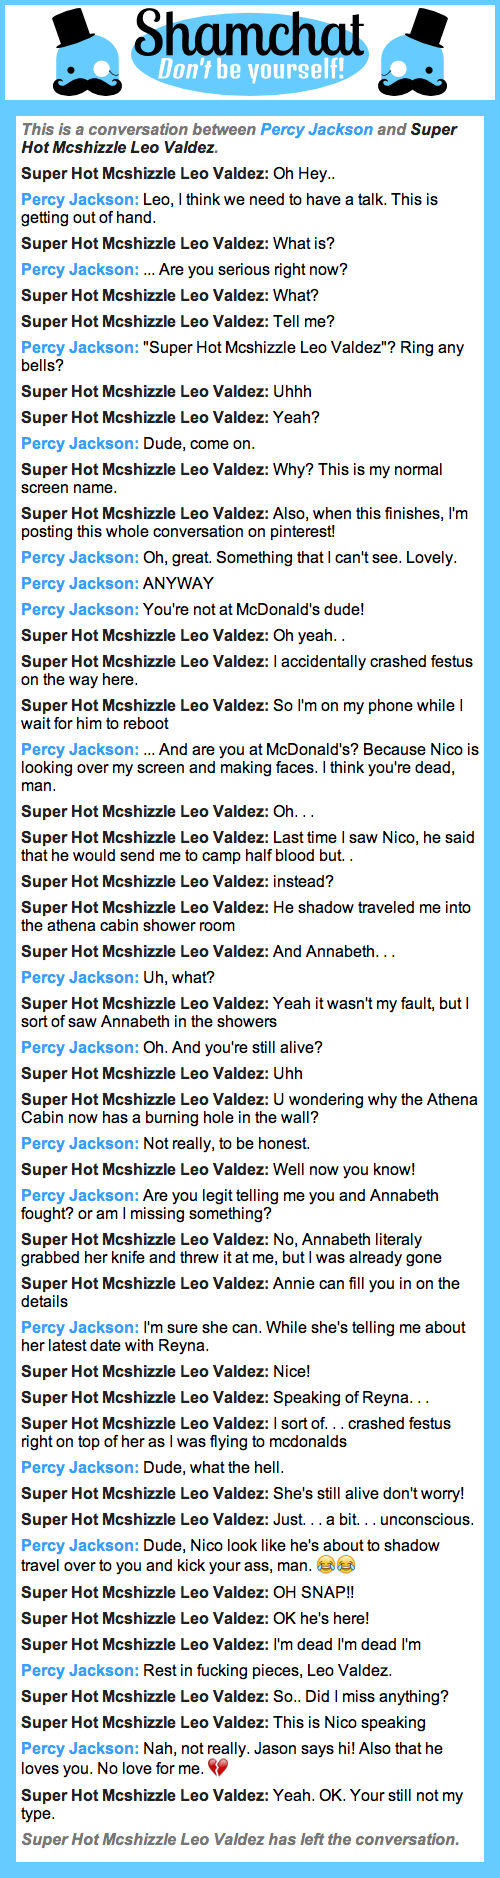 A conversation between Super Hot Mcshizzle Leo Valdez and Percy Jackson